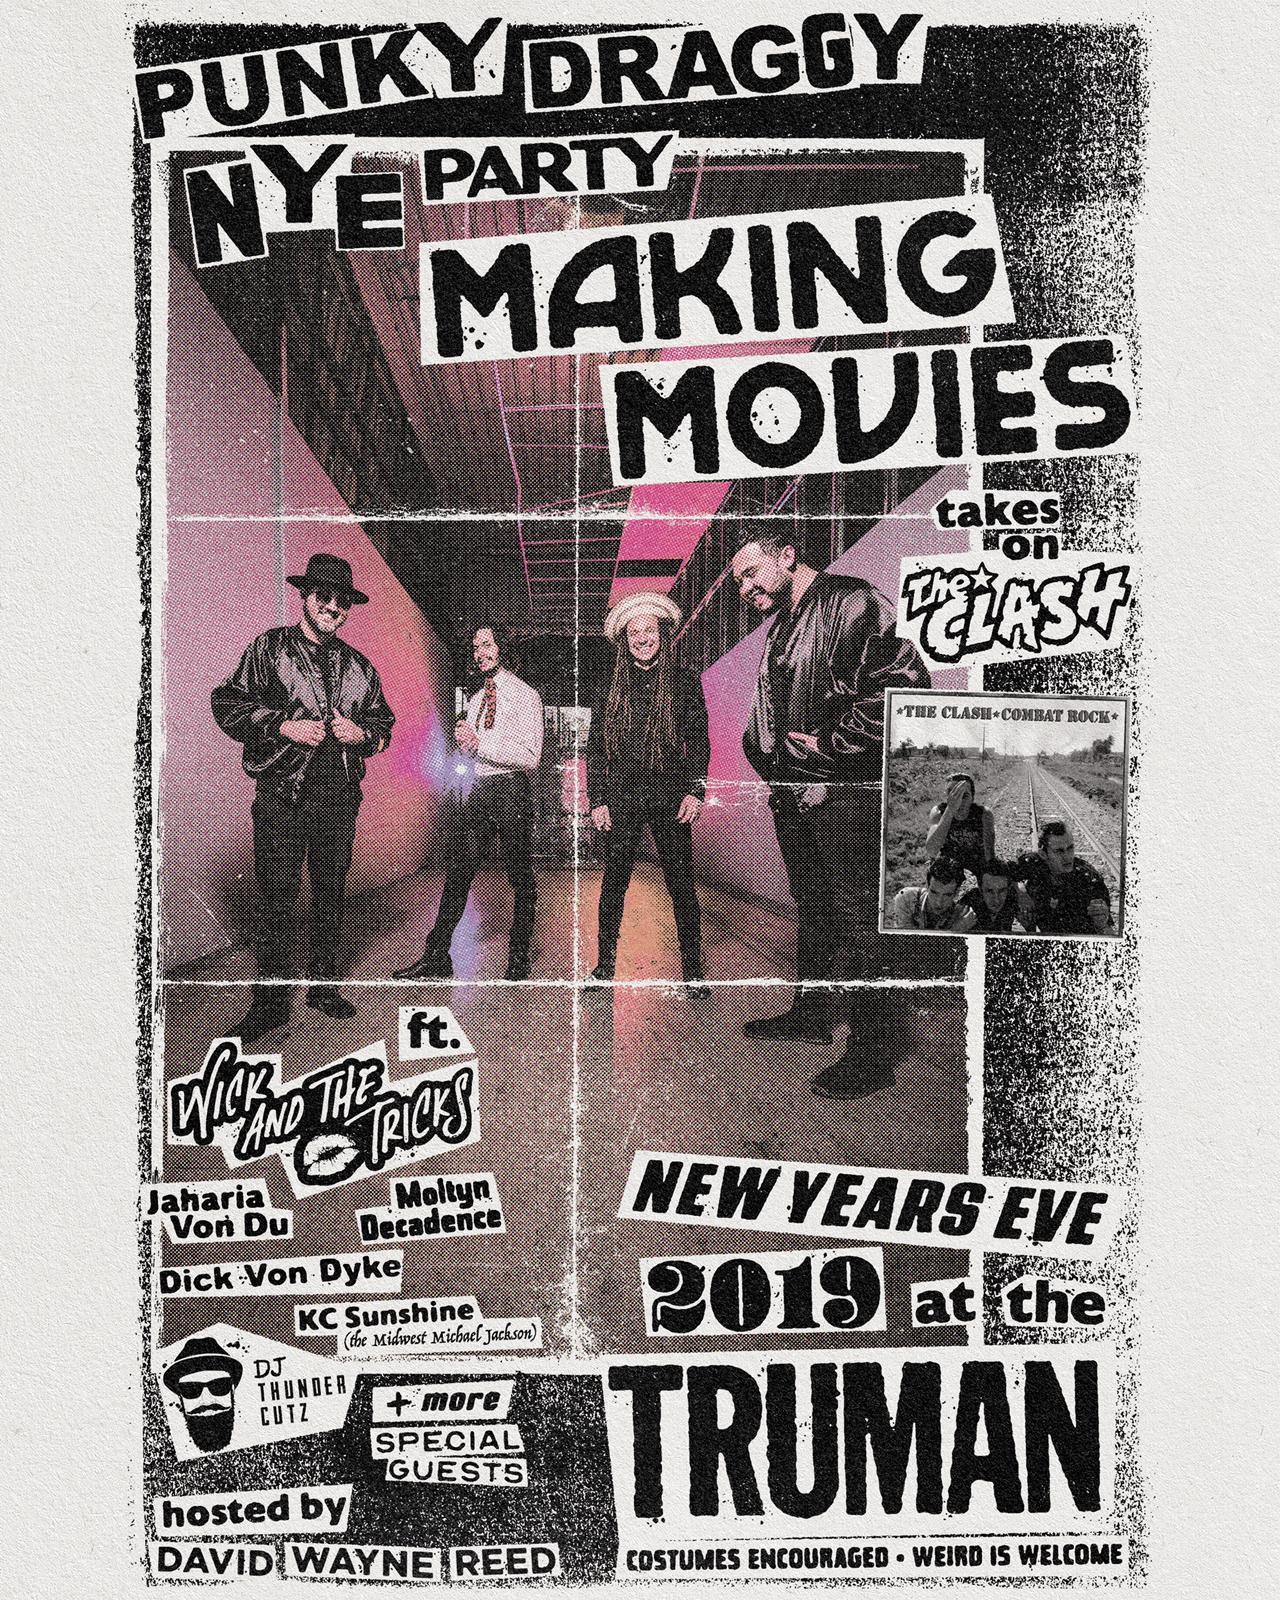 NYE at The Truman - Kansas City, MO Tickets